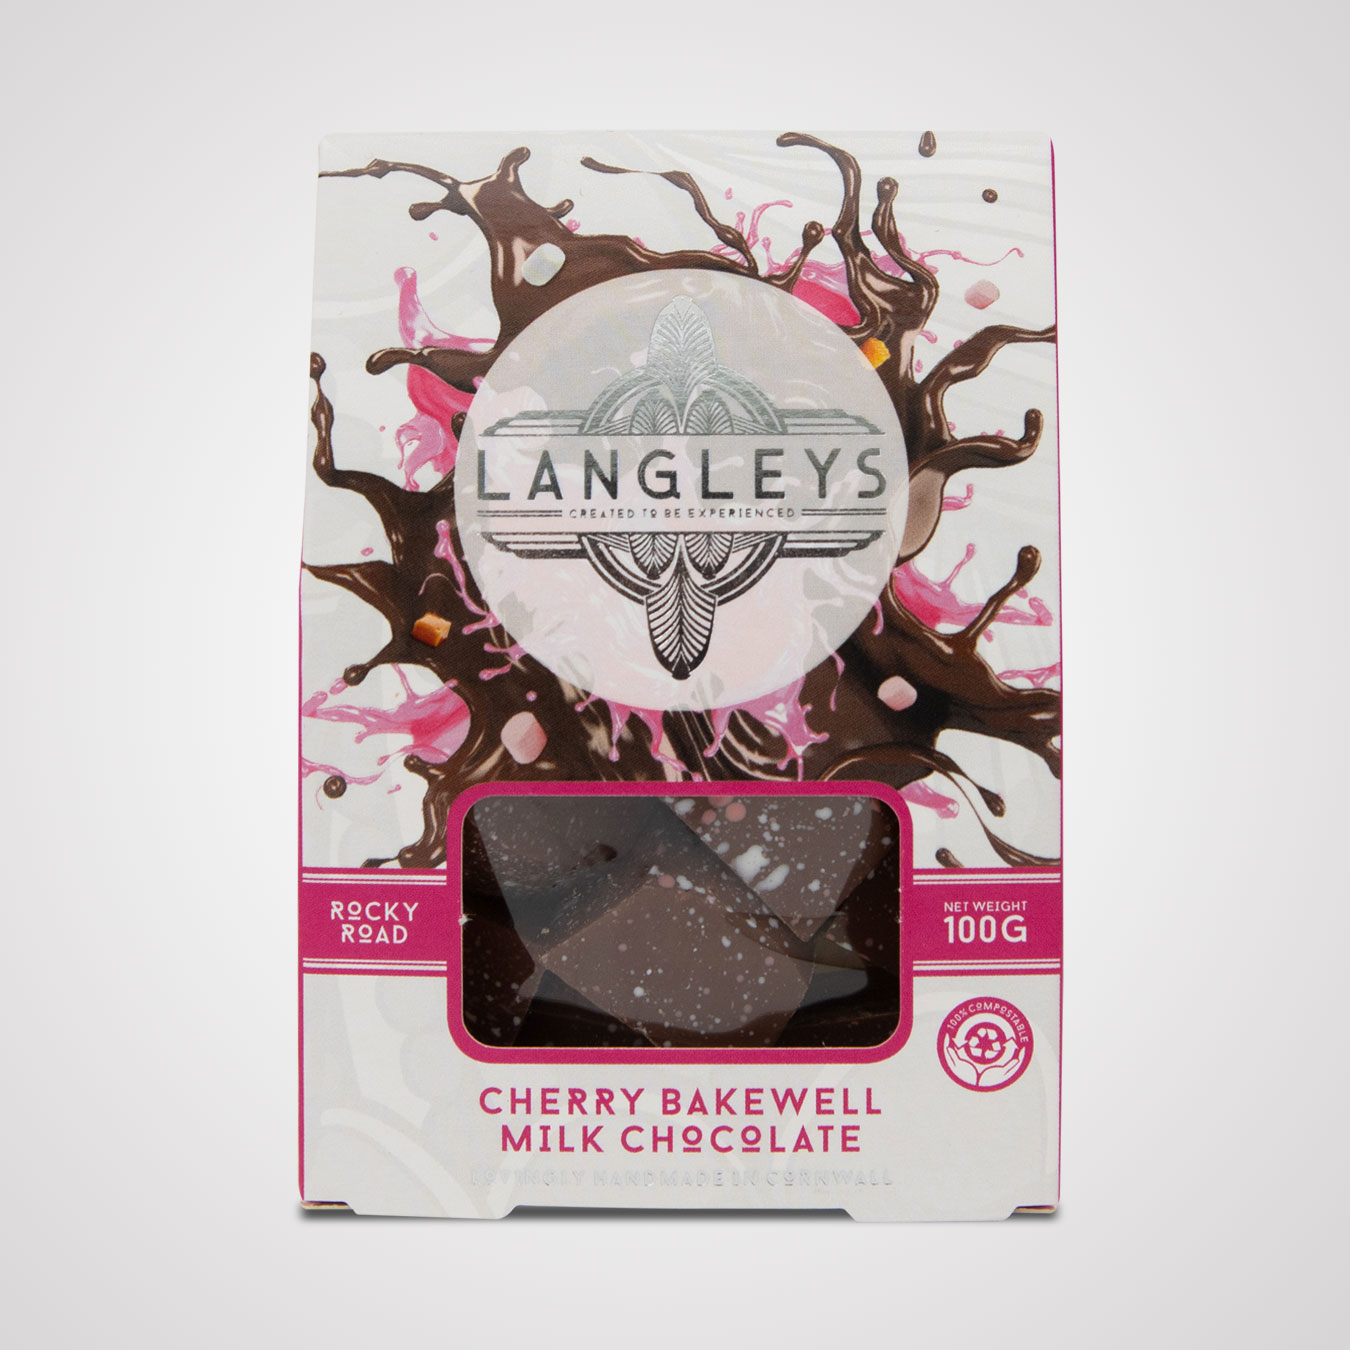 Cherry Bakewell Rocky Road